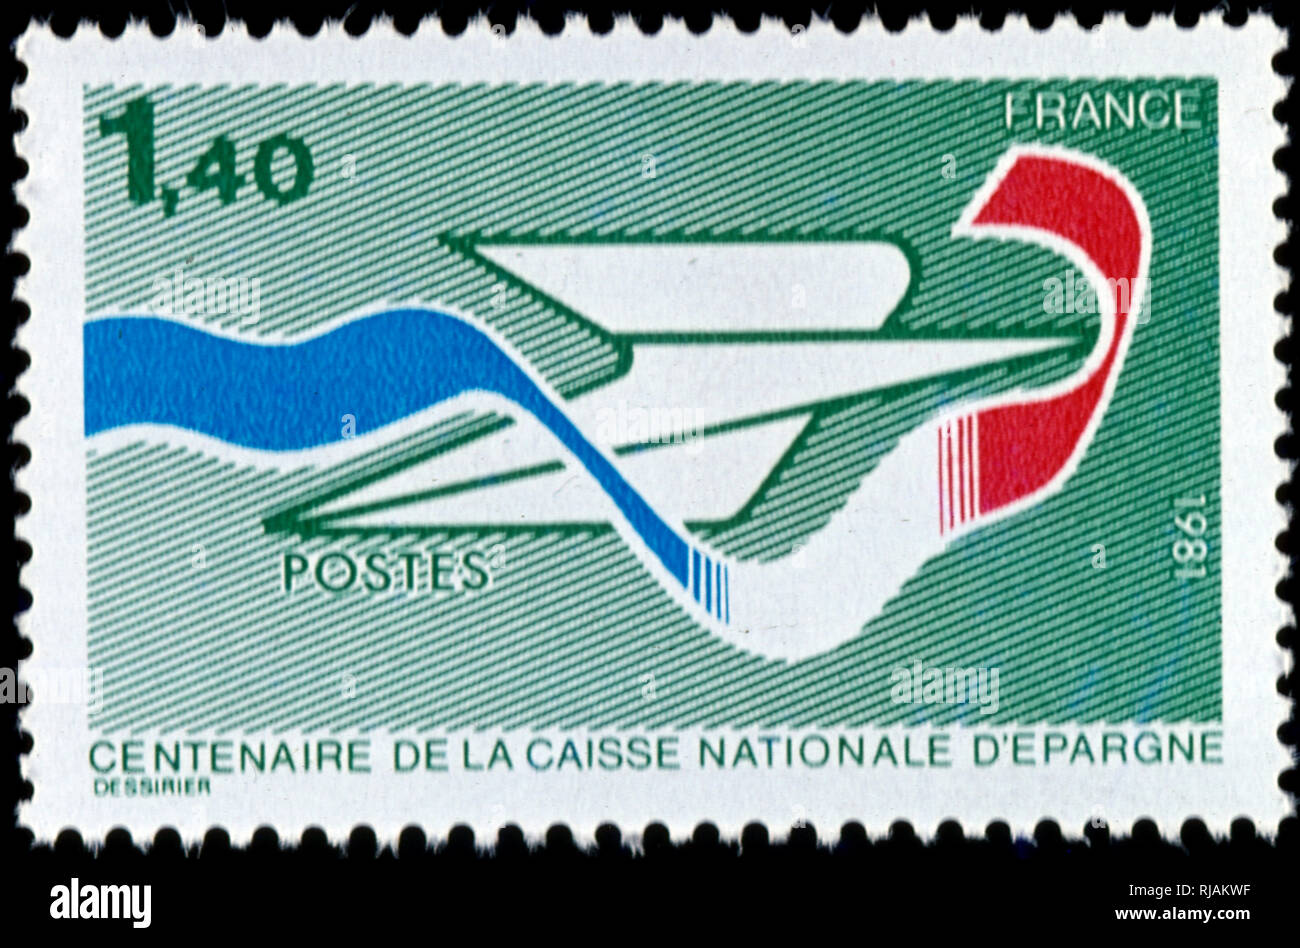 French postage stamp celebrating the centenary of Groupe Caisse d'epargne, a French semi-cooperative banking group, founded in 1818, - Stock Image